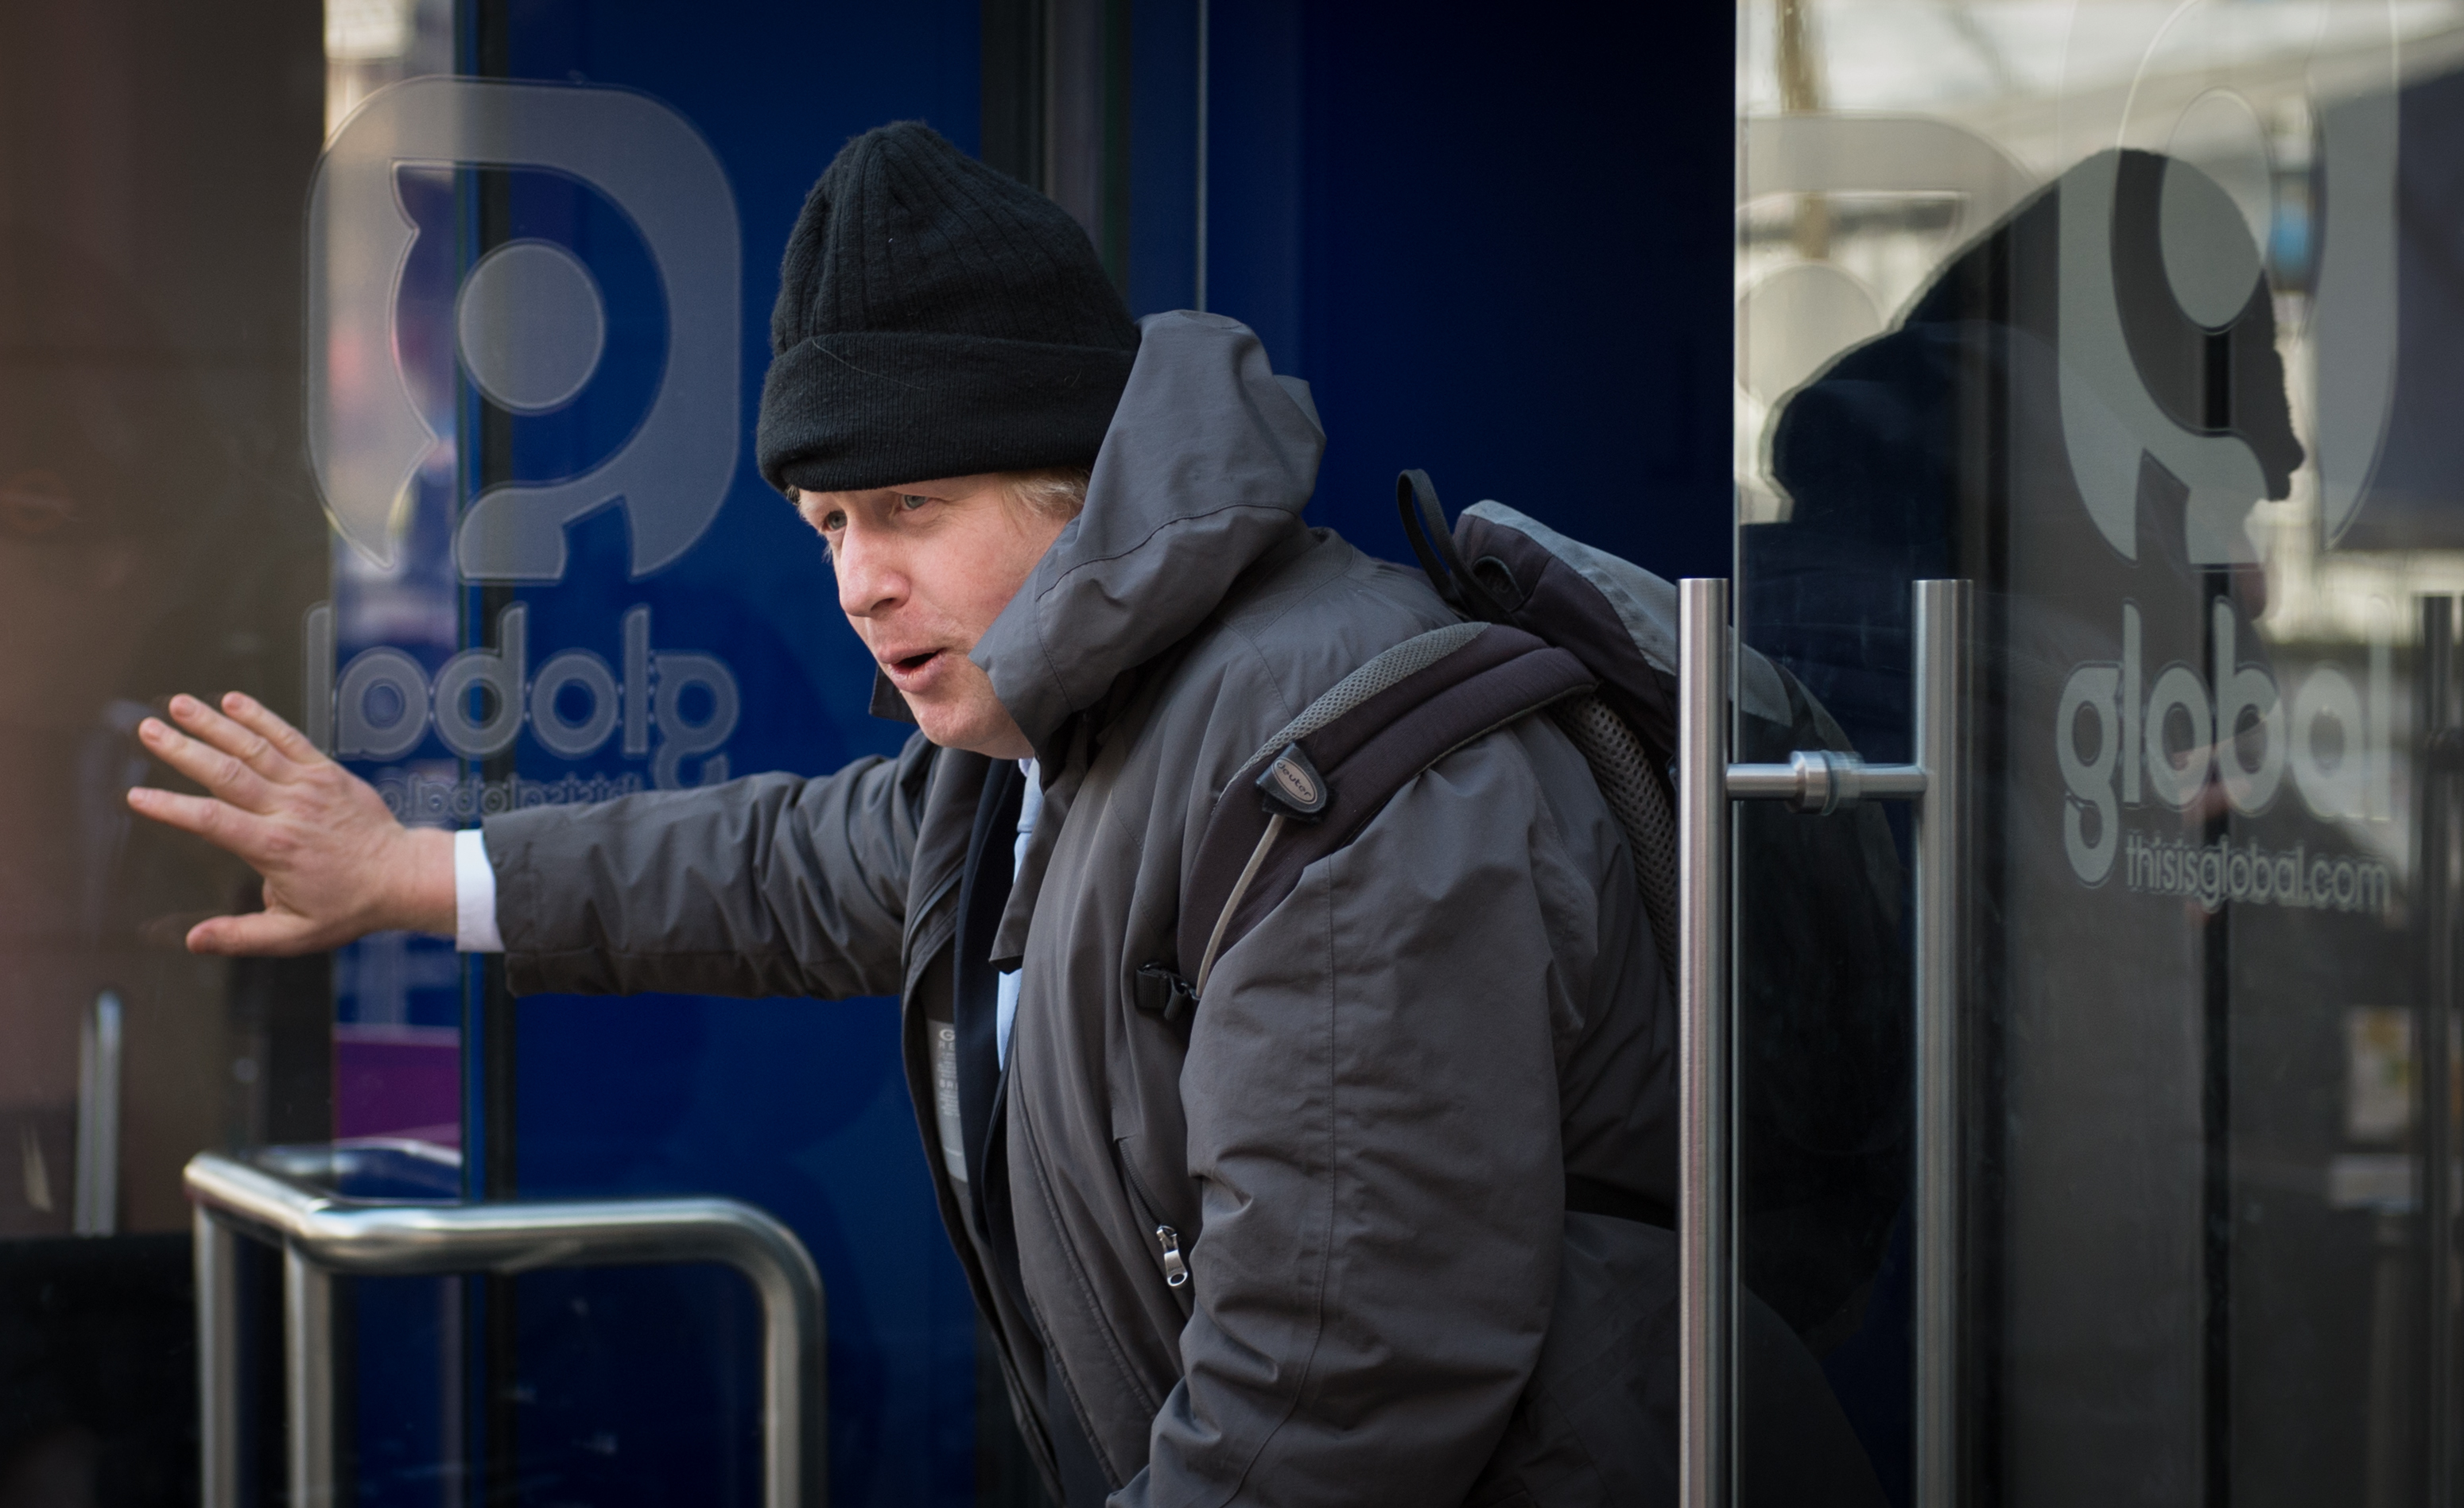 Mayor of London Boris Johnson leaves Global Radio studios in central London after presenting his regularly phone-in show for LBC radio following David Cameron comments that he is ruling out a third term as Prime Minister.